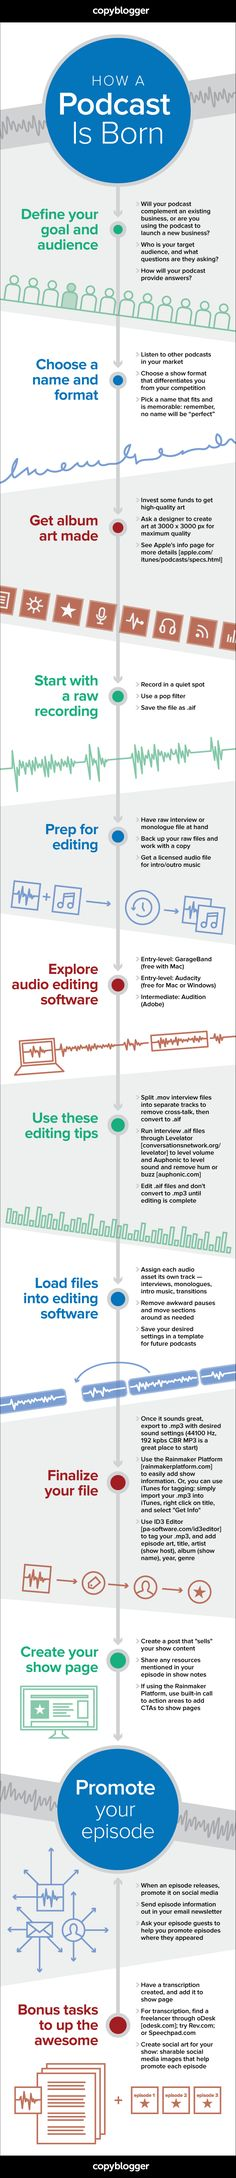 http://www.socialmediatoday.com/marketing/aag/2015-06-12/beginners-guide-podcasting-infographic